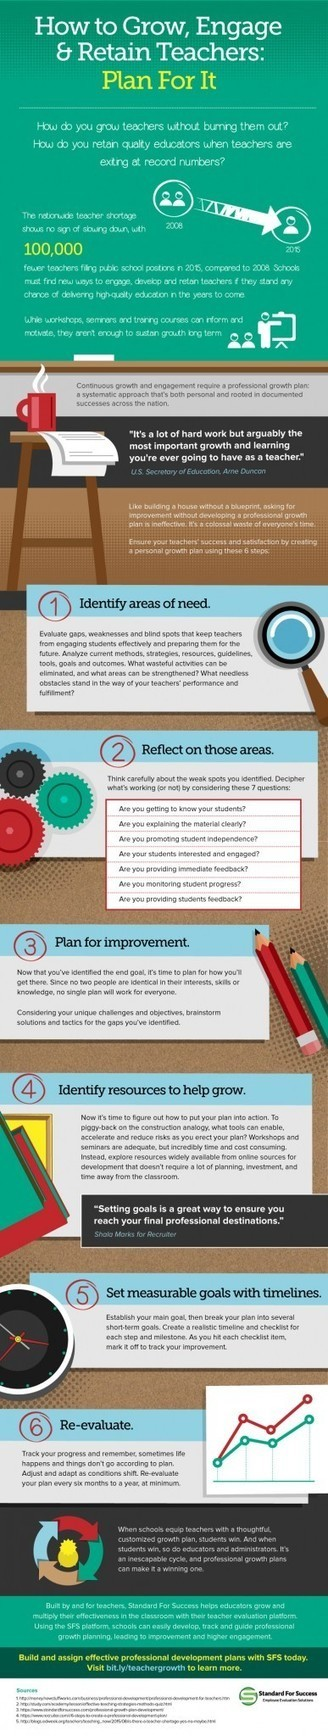 How to Grow, Engage and Retain Teachers Infographic | Universidad 3.0 | Scoop.it